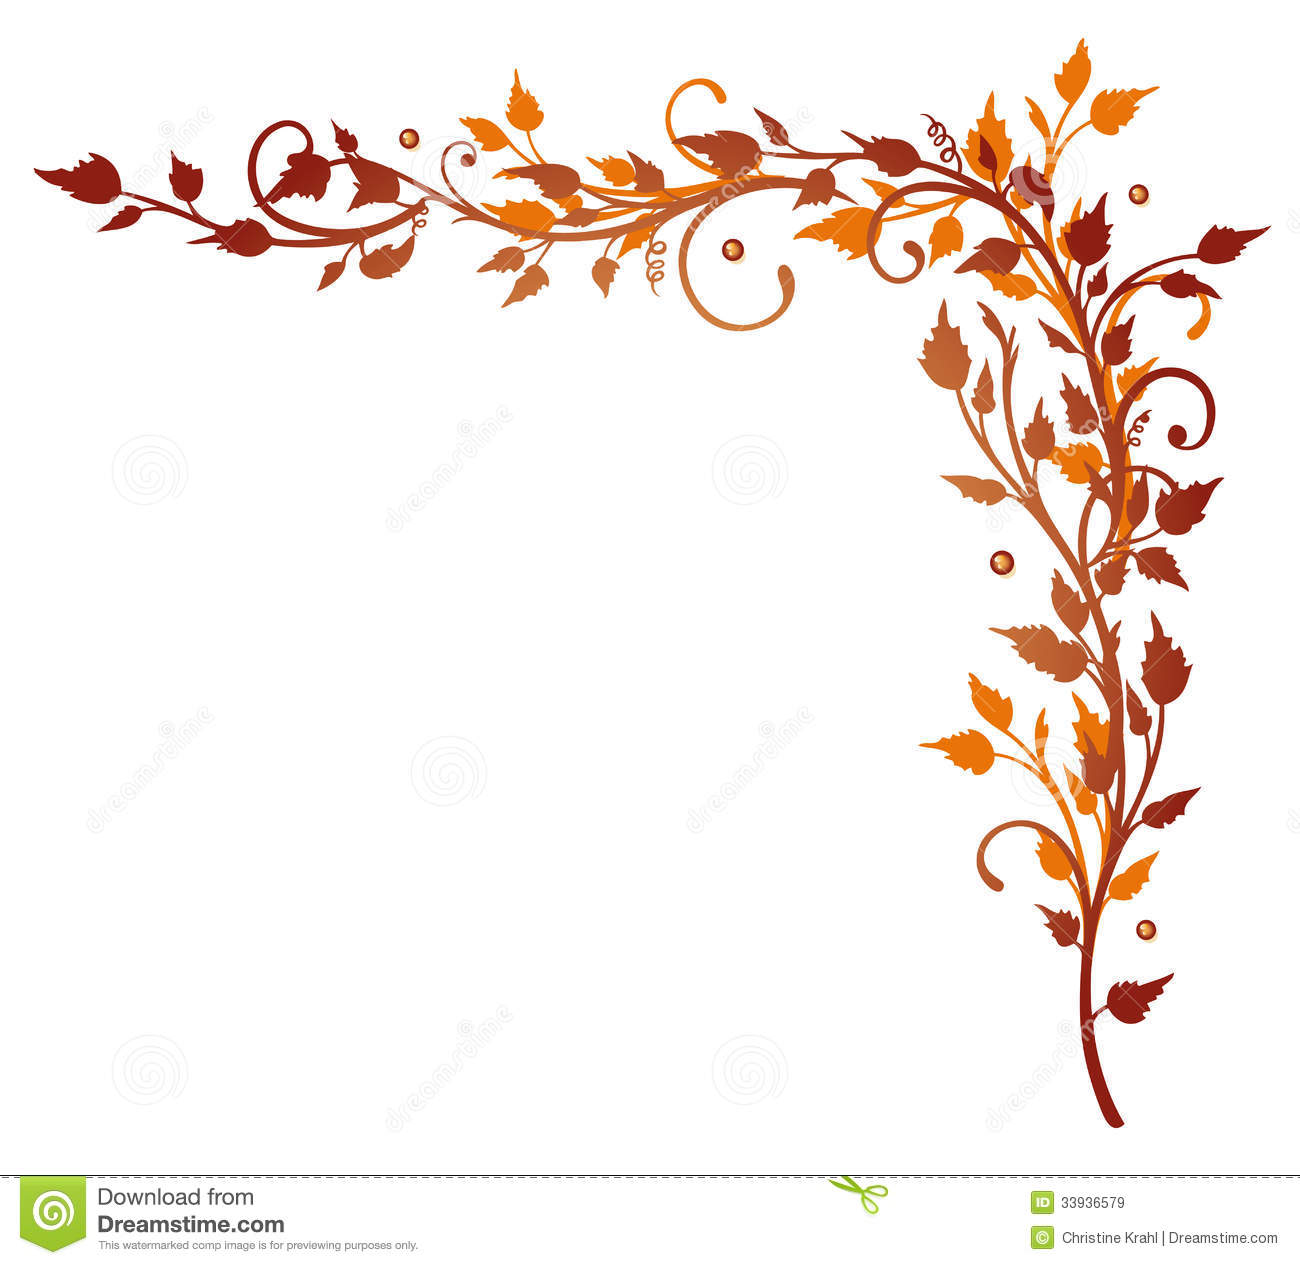 bl u00e4tter  ranke  herbst vektor abbildung illustration von thanksgiving clip art images thanksgiving clip art borders